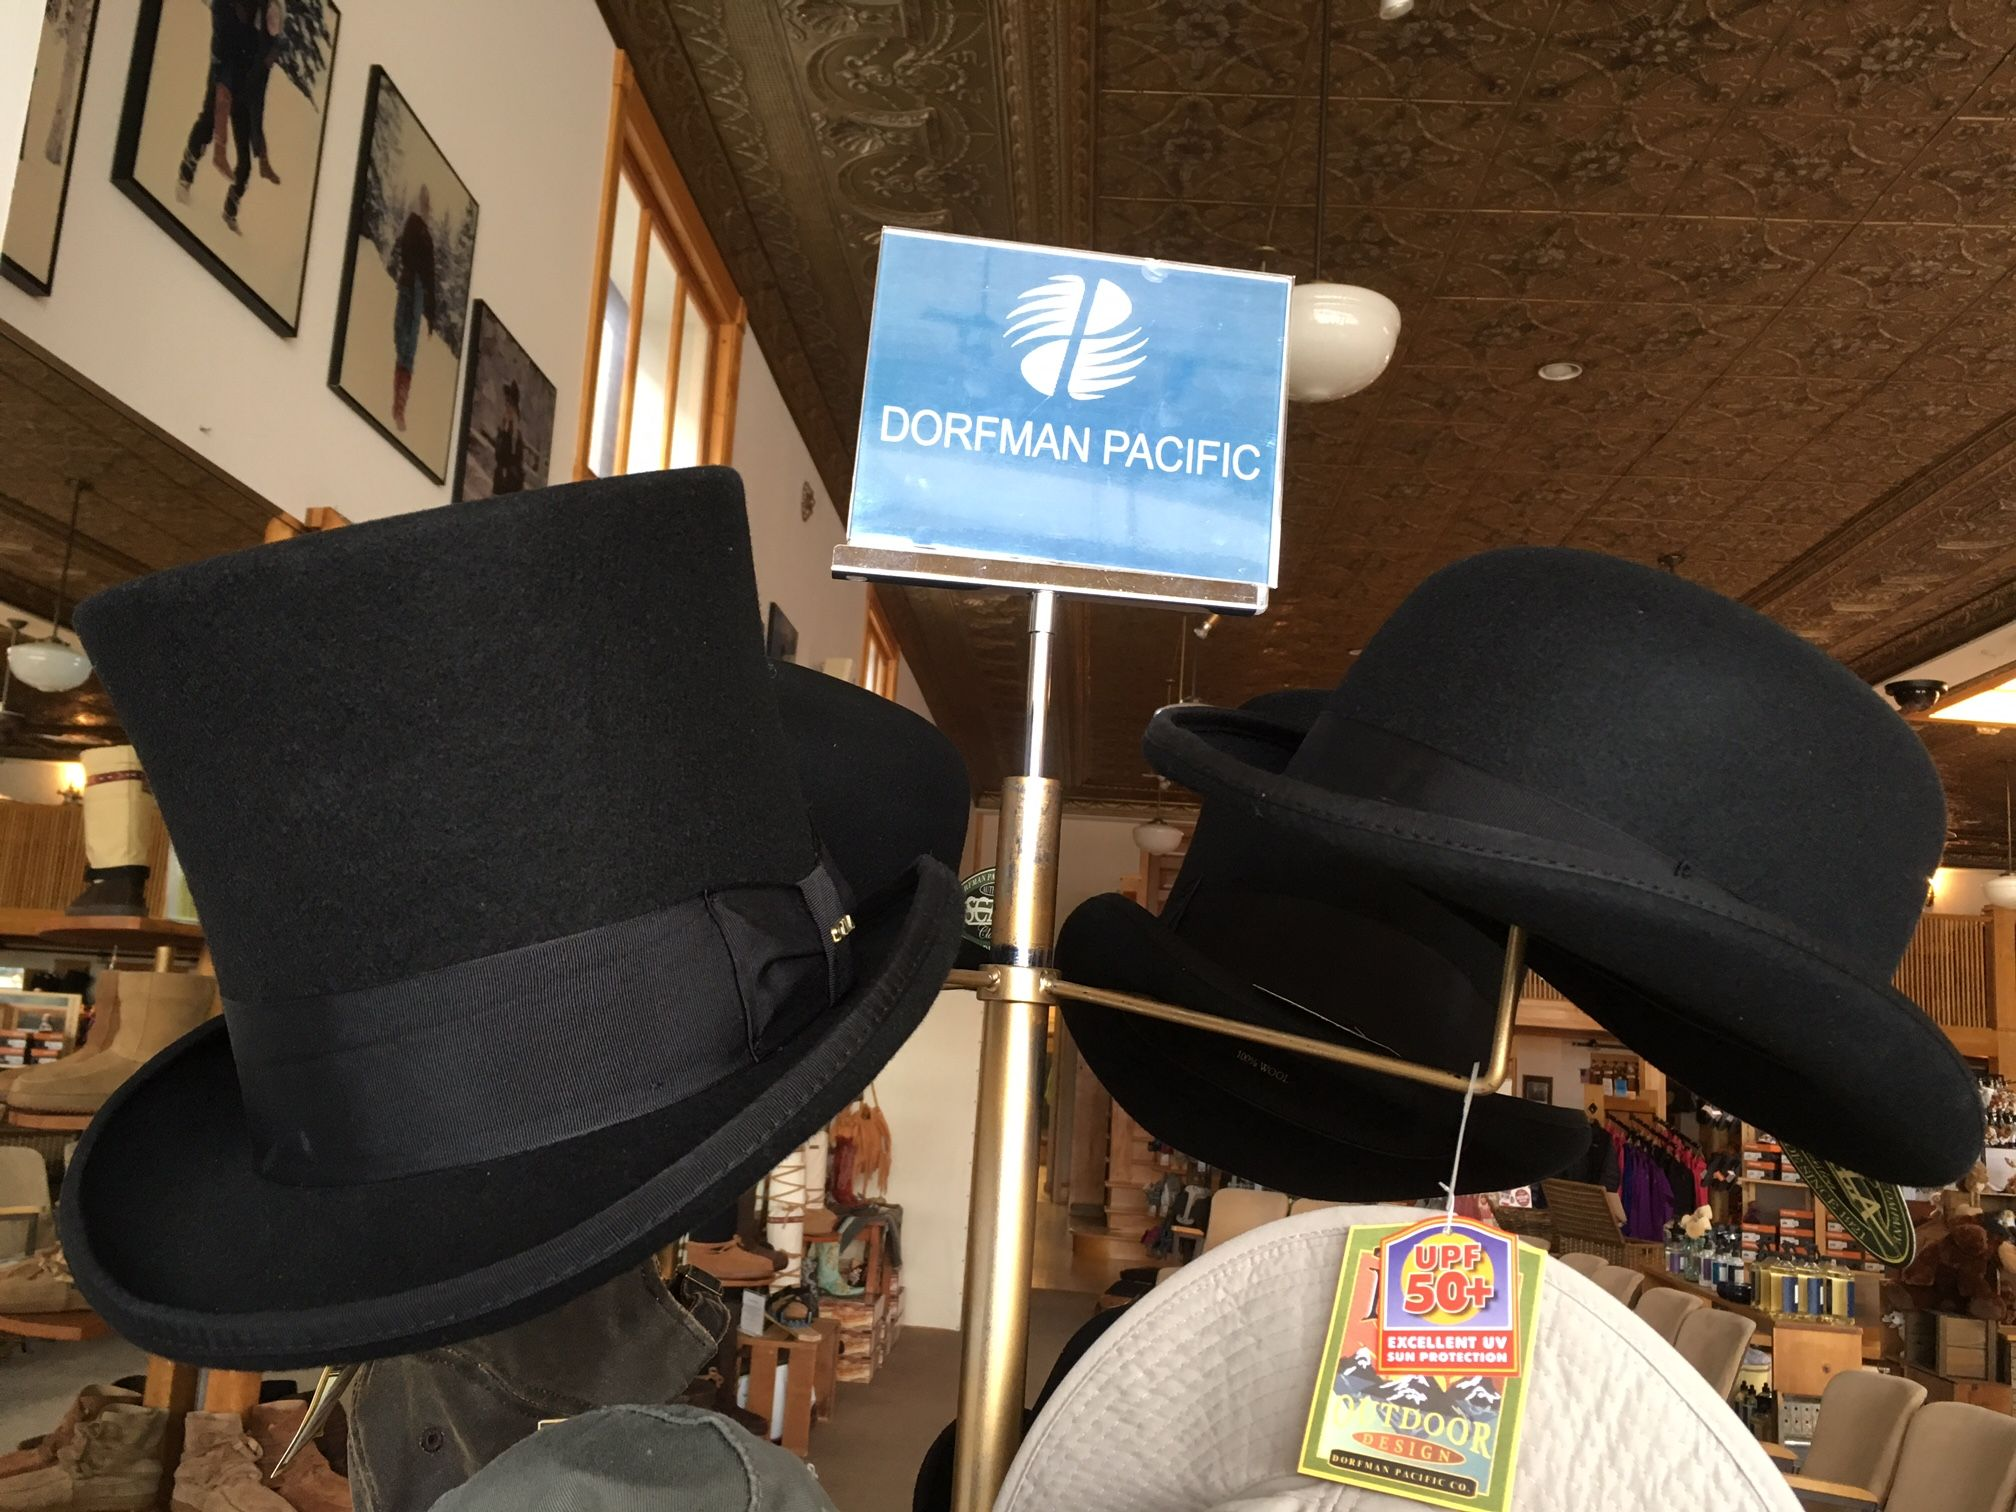 Looking for a top hat or bowler hat - you need to stop by the store at #stegermukluks #DorfmanPacific